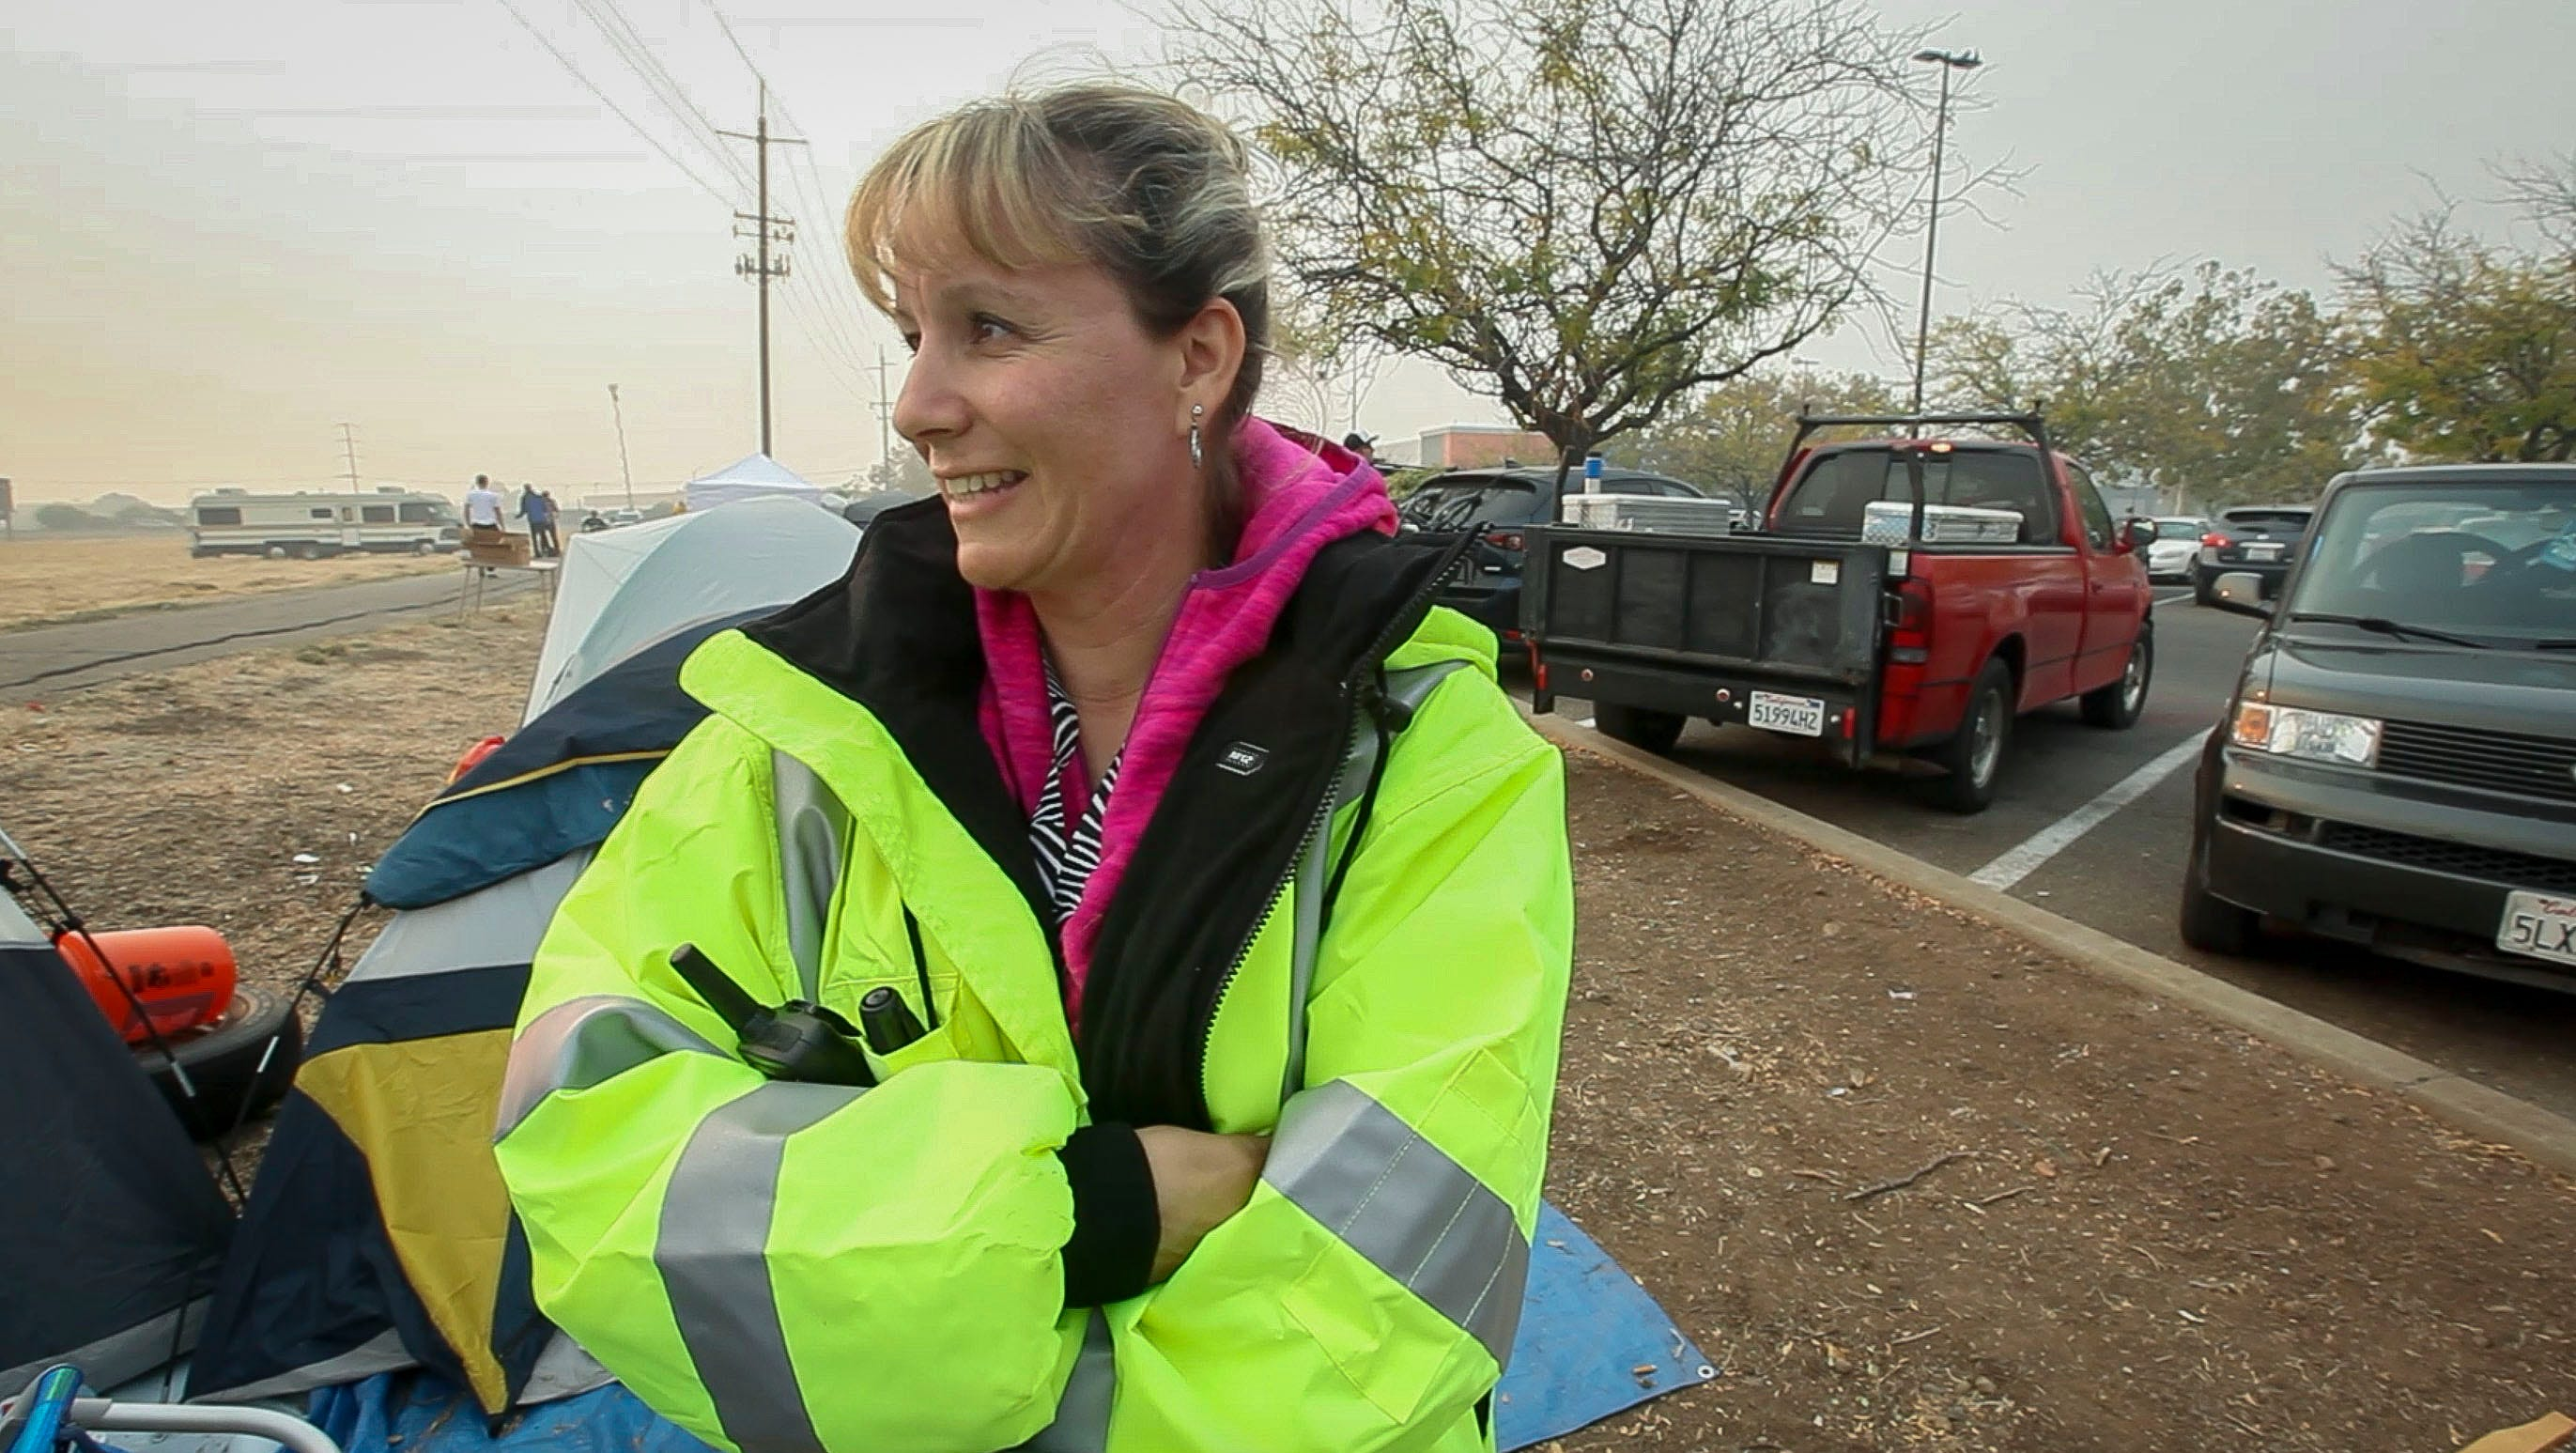 Melissa Contant, of the Bay area of California felt compelled to help out and brought a truckload of supplies for the evacuees of the Camp Fire. She has brought together many services to help people who have taken refuge in a Walmart parking lot in Chico, CA.